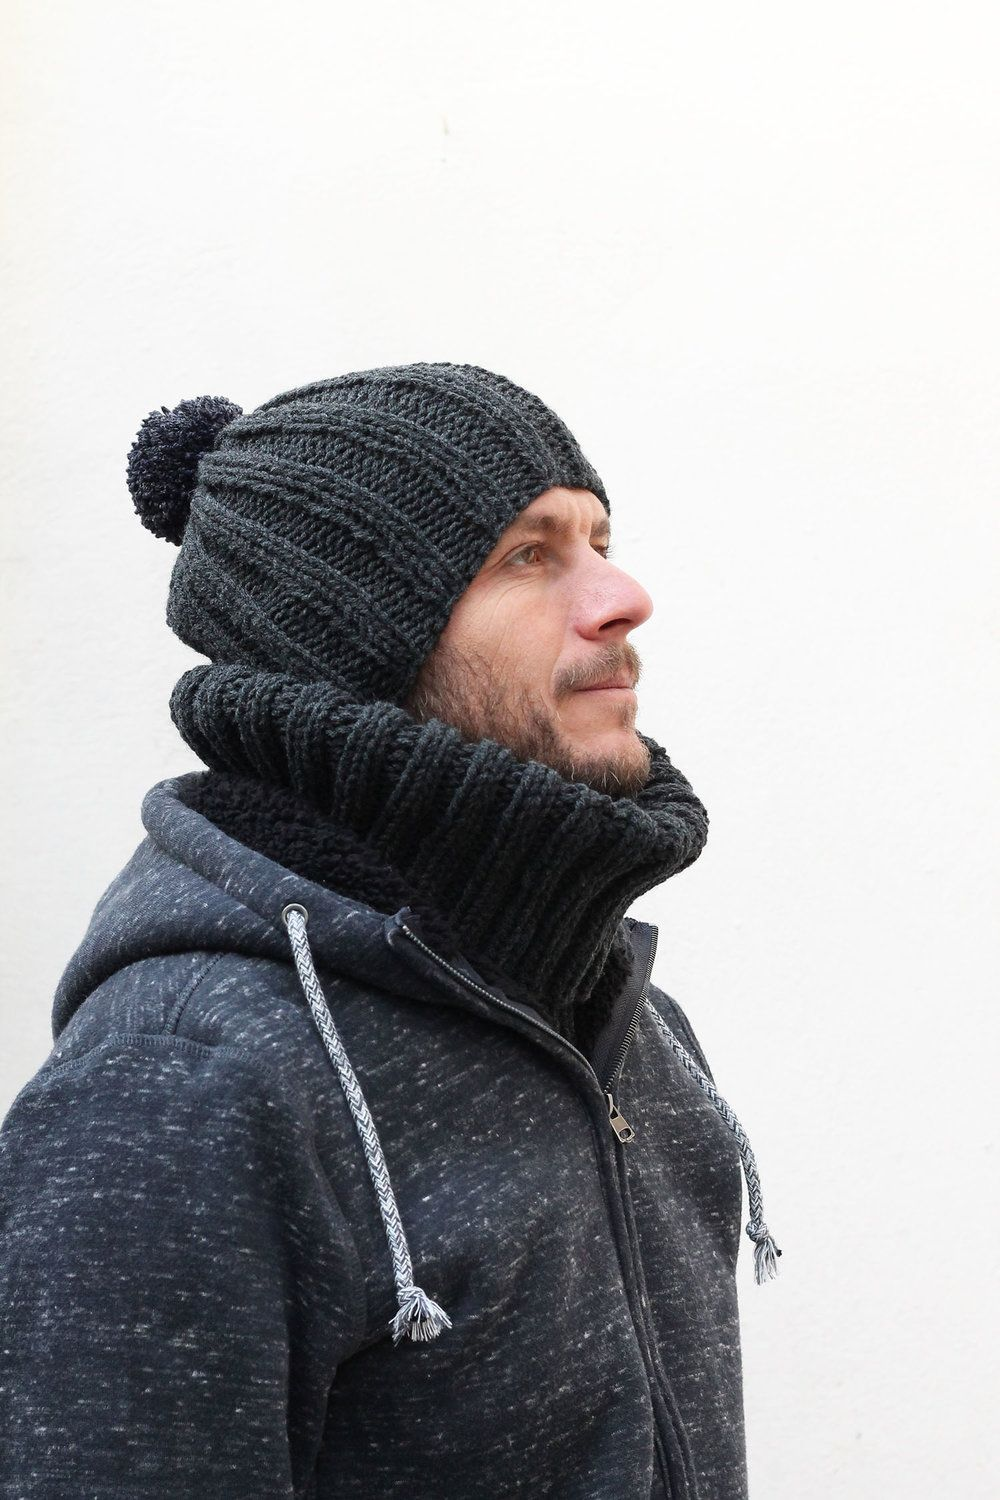 98f47d98ddaabc I knit a simple ribbed beanie for my husband for the winter. He is wearing